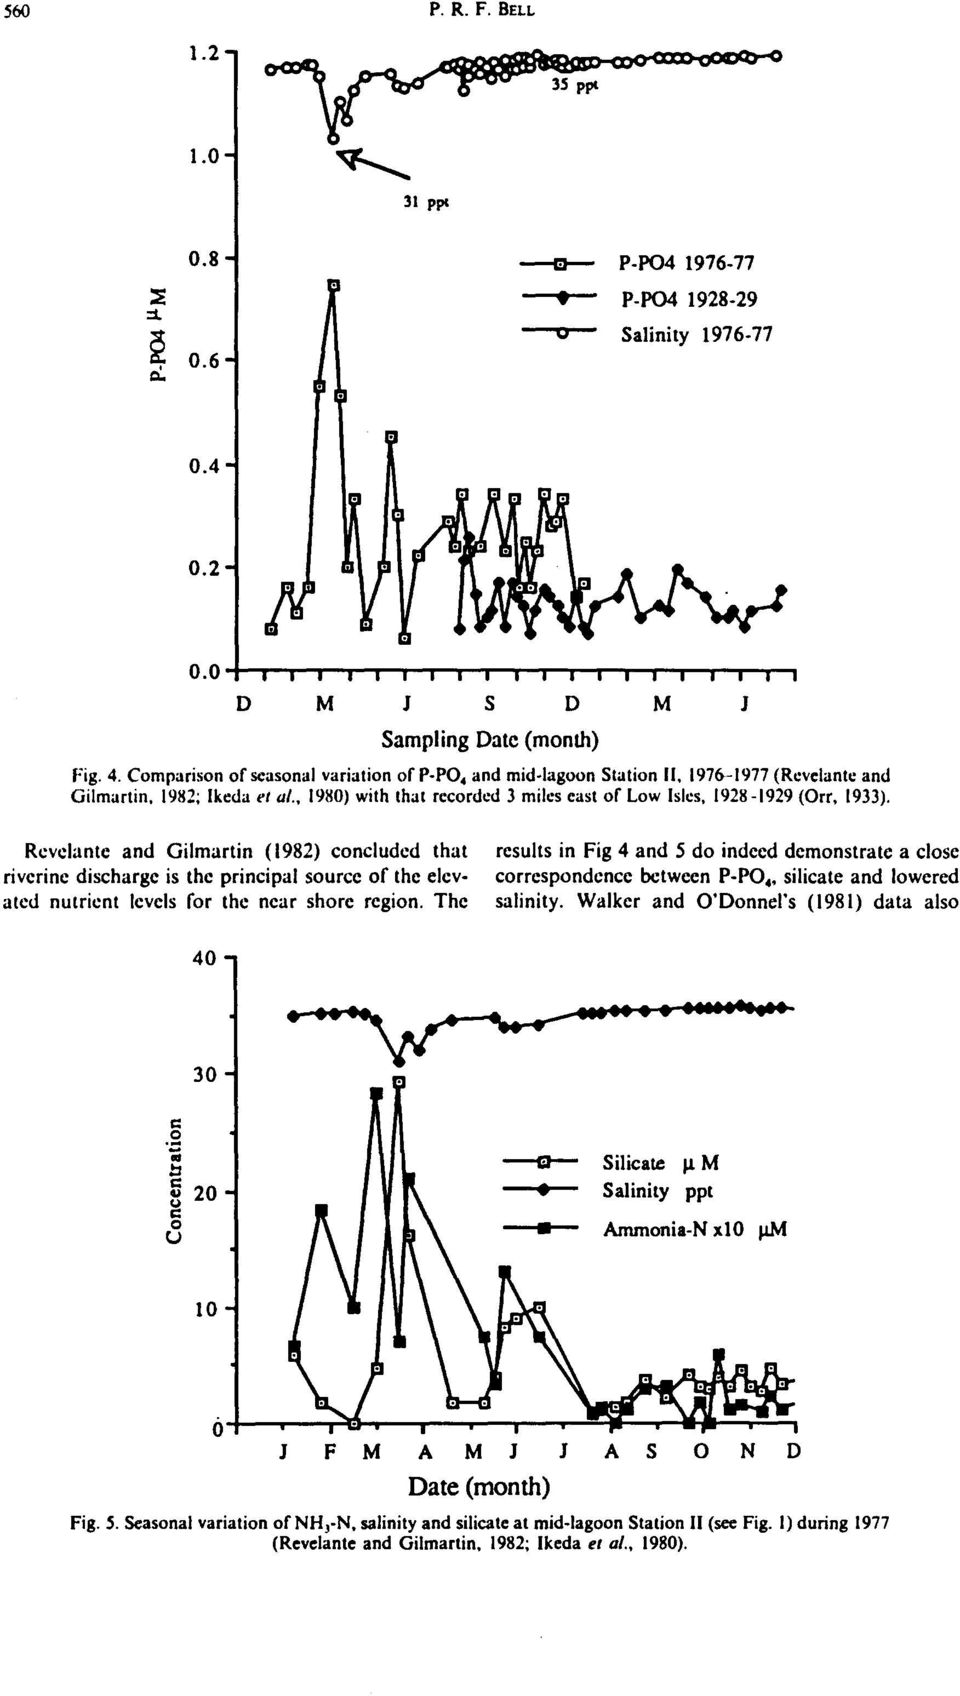 Rcvelante and Gilmartin (1982)concluded that riverine discharge is the principal source of the elevated nutrient levels for the near shore region.